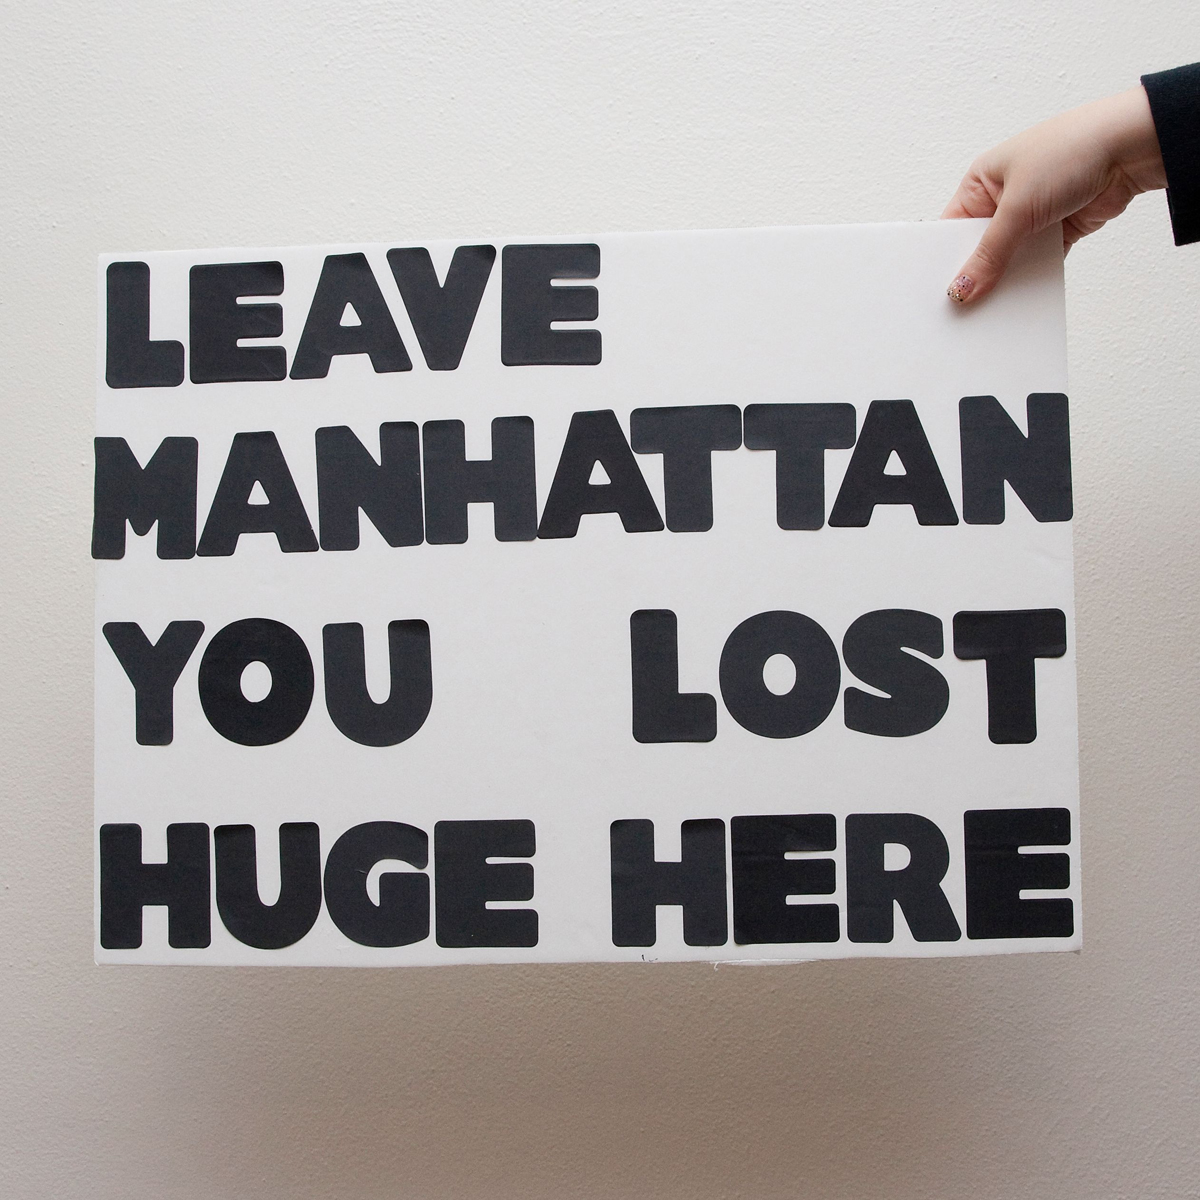 45 Protest Signs_Brandon and Olivia Locher_7_Leave Manhattan